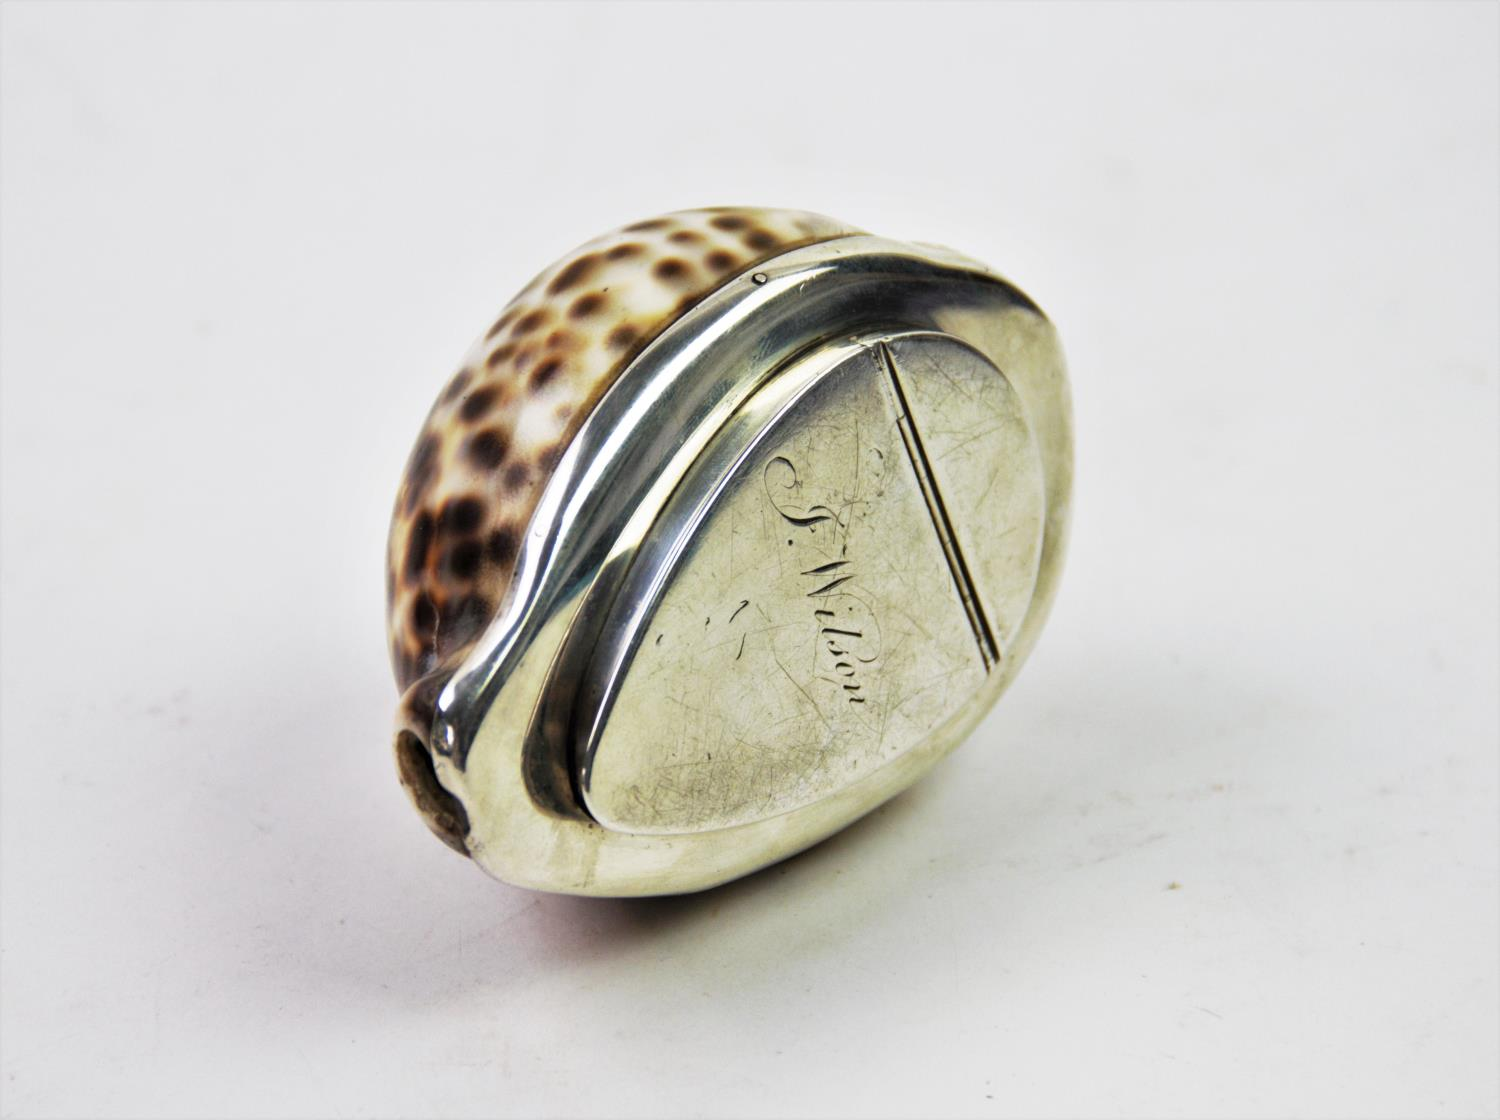 Lot 39 - A 20th century white metal mounted cowry shell snuff box, the shell designed with white metal